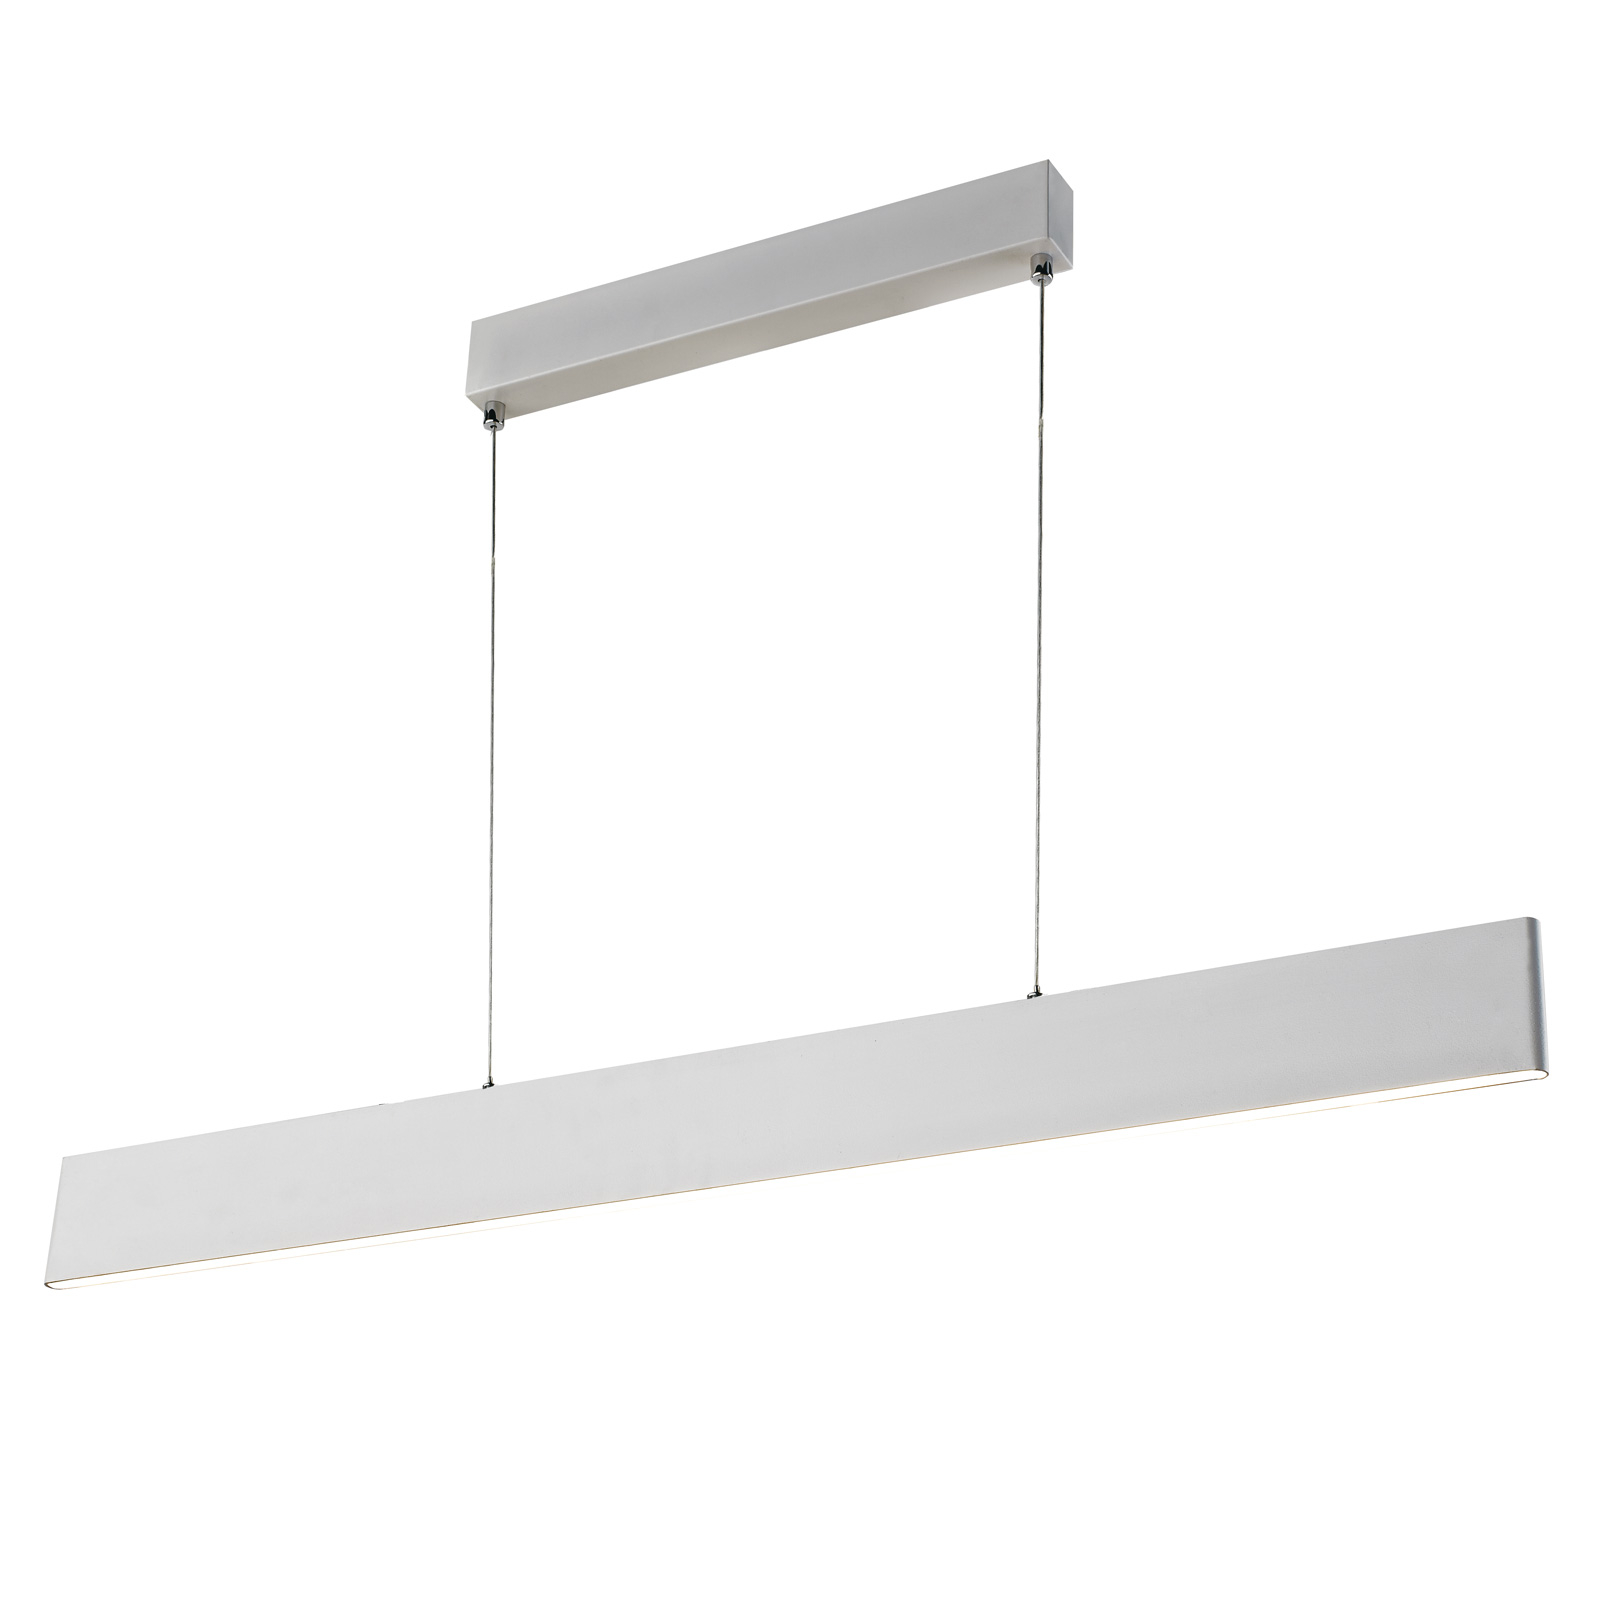 Suspension LED Sileas, 91 cm, blanche, dimmable